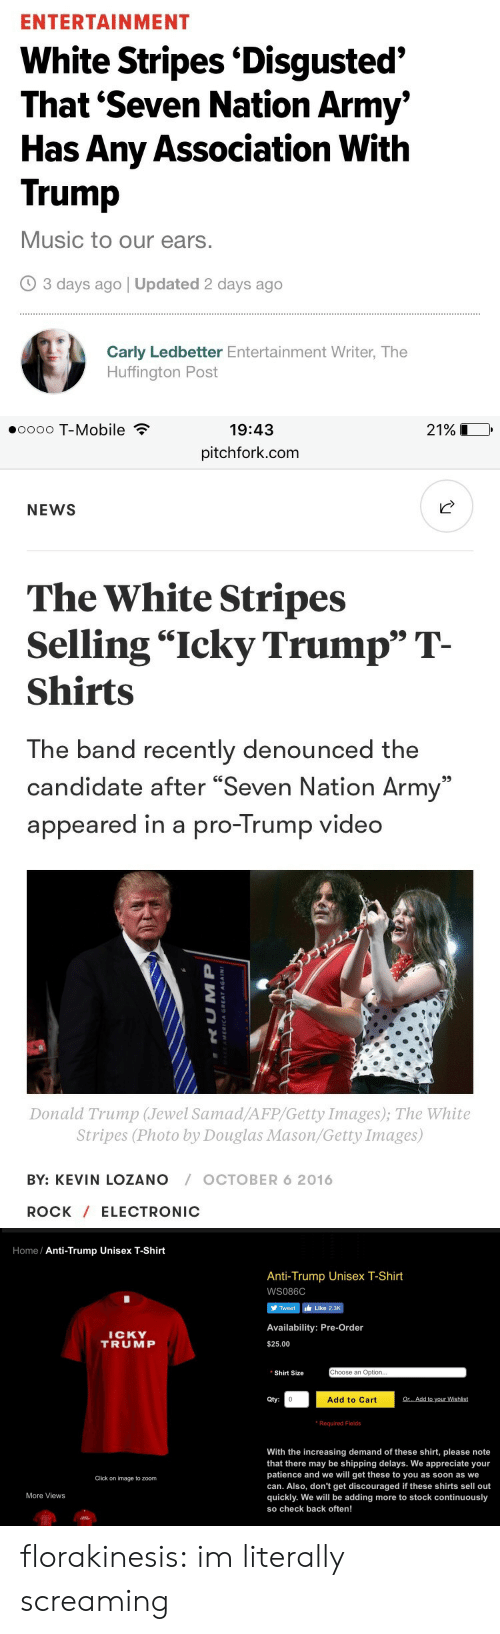 "white stripes: ENTERTAINMENT  White Stripes 'Disgusted'  That 'Seven Nation Army'  Has Any Association With  Trump  Music to our ears.  3 days ago | Updated 2 days ago  Carly Ledbetter Entertainment Writer, The  Huffington Post   oooo T-Mobile  19:43  21%  pitchfork.com  NEWS  The White Stripes  Selling ""Icky Trump"" T-  Shirts  The band recently denounced the  candidate after ""Seven Nation Army""  appeared in a pro-Trump video  Donald Trump (Jewel Samad/AFP/Getty Images); The White  Stripes (Photo by Douglas Mason/Getty Images)  BY: KEVIN LOZANO  OCTOBER 6 2016  ROCK ELECTRONIC   Home Anti-Trump Unisex T-Shirt  Anti-Trump Unisex T-Shirt  ws086C  Tweet Like 2.3K  Availability: Pre-Order  ICKY  TRUMP  $25.00  Choose an Option...  Shirt Size  Or.. Add to your Wishlist  Qty:  0  Add to Cart  Required Fields  With the increasing demand of these shirt, please note  that there may be shipping delays. We appreciate your  patience and we will get these to you as soon as we  Click on image to zoom  can. Also, don't get discouraged if these shirts sell out  quickly. We will be adding more to stock continuously  More Views  so check back often! florakinesis:  im literally screaming"